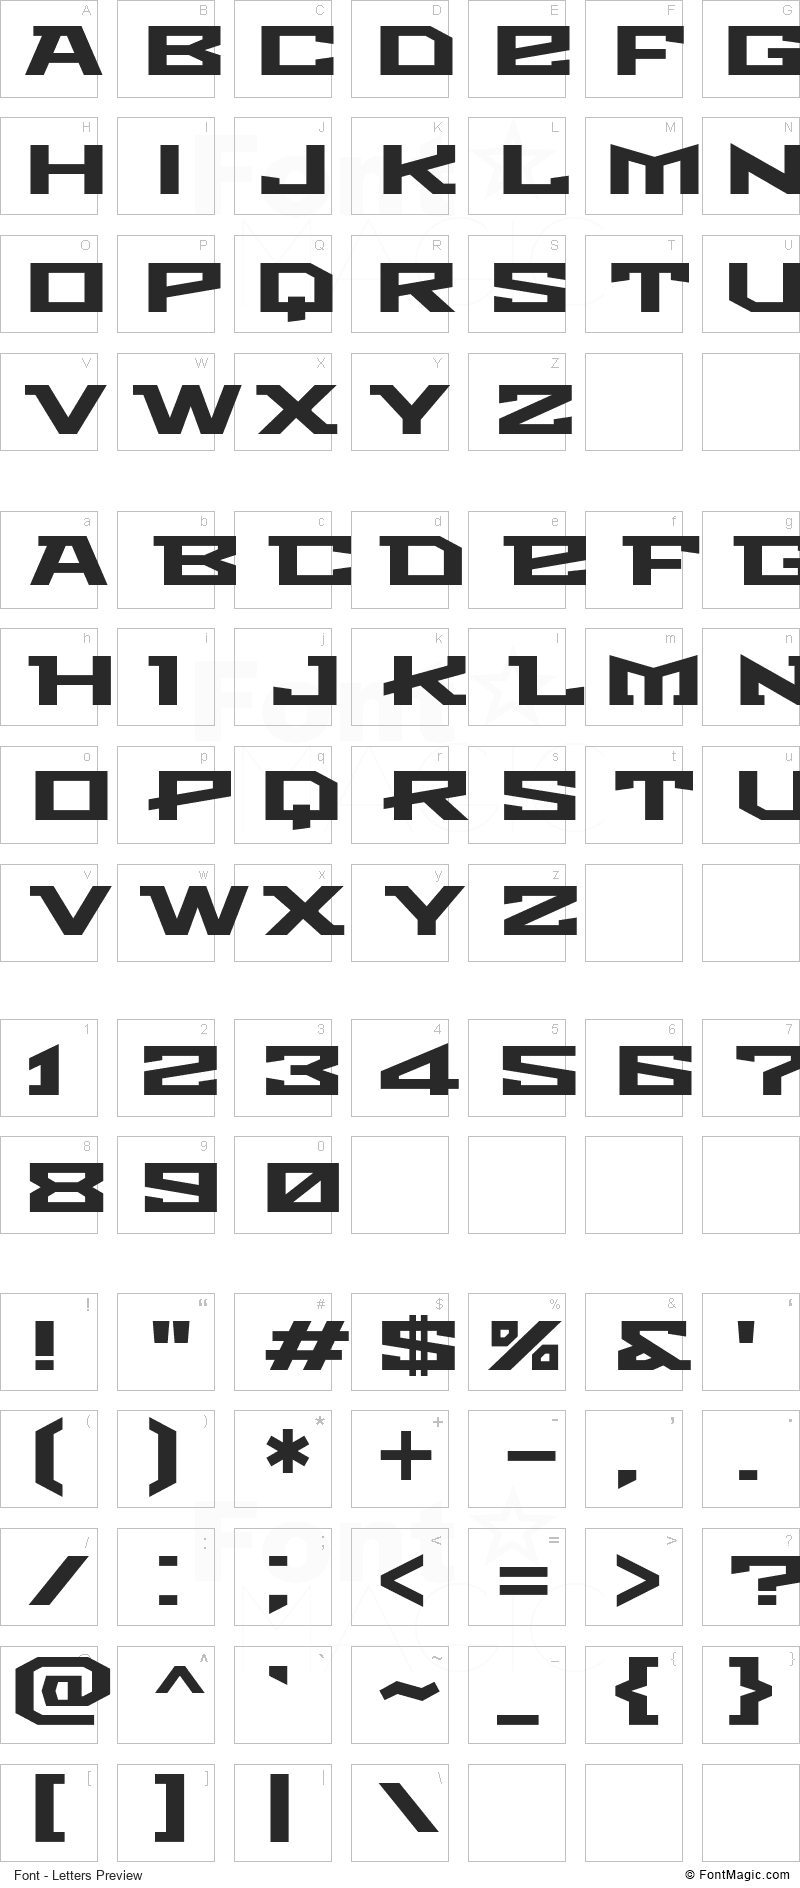 Metro Font - All Latters Preview Chart